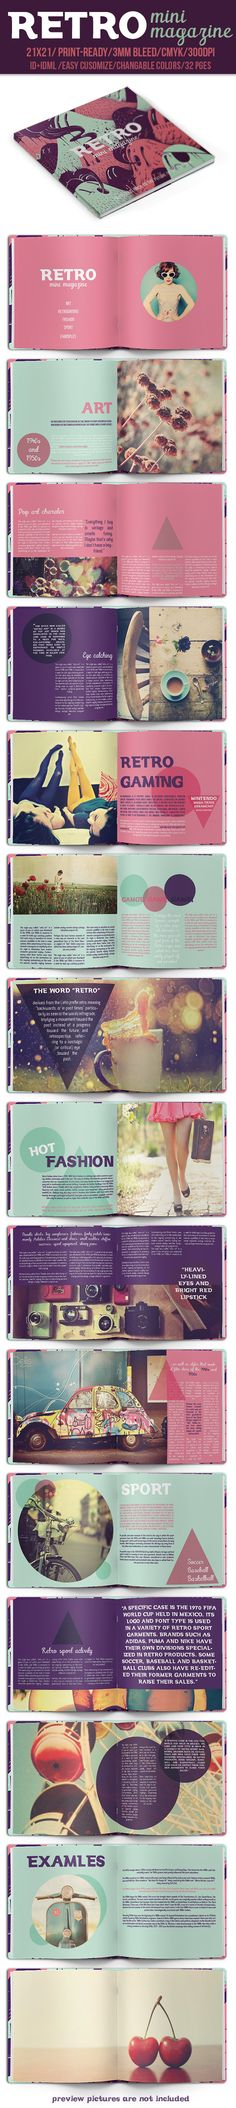 Retro Mini Magazine by crew55design, via Behance